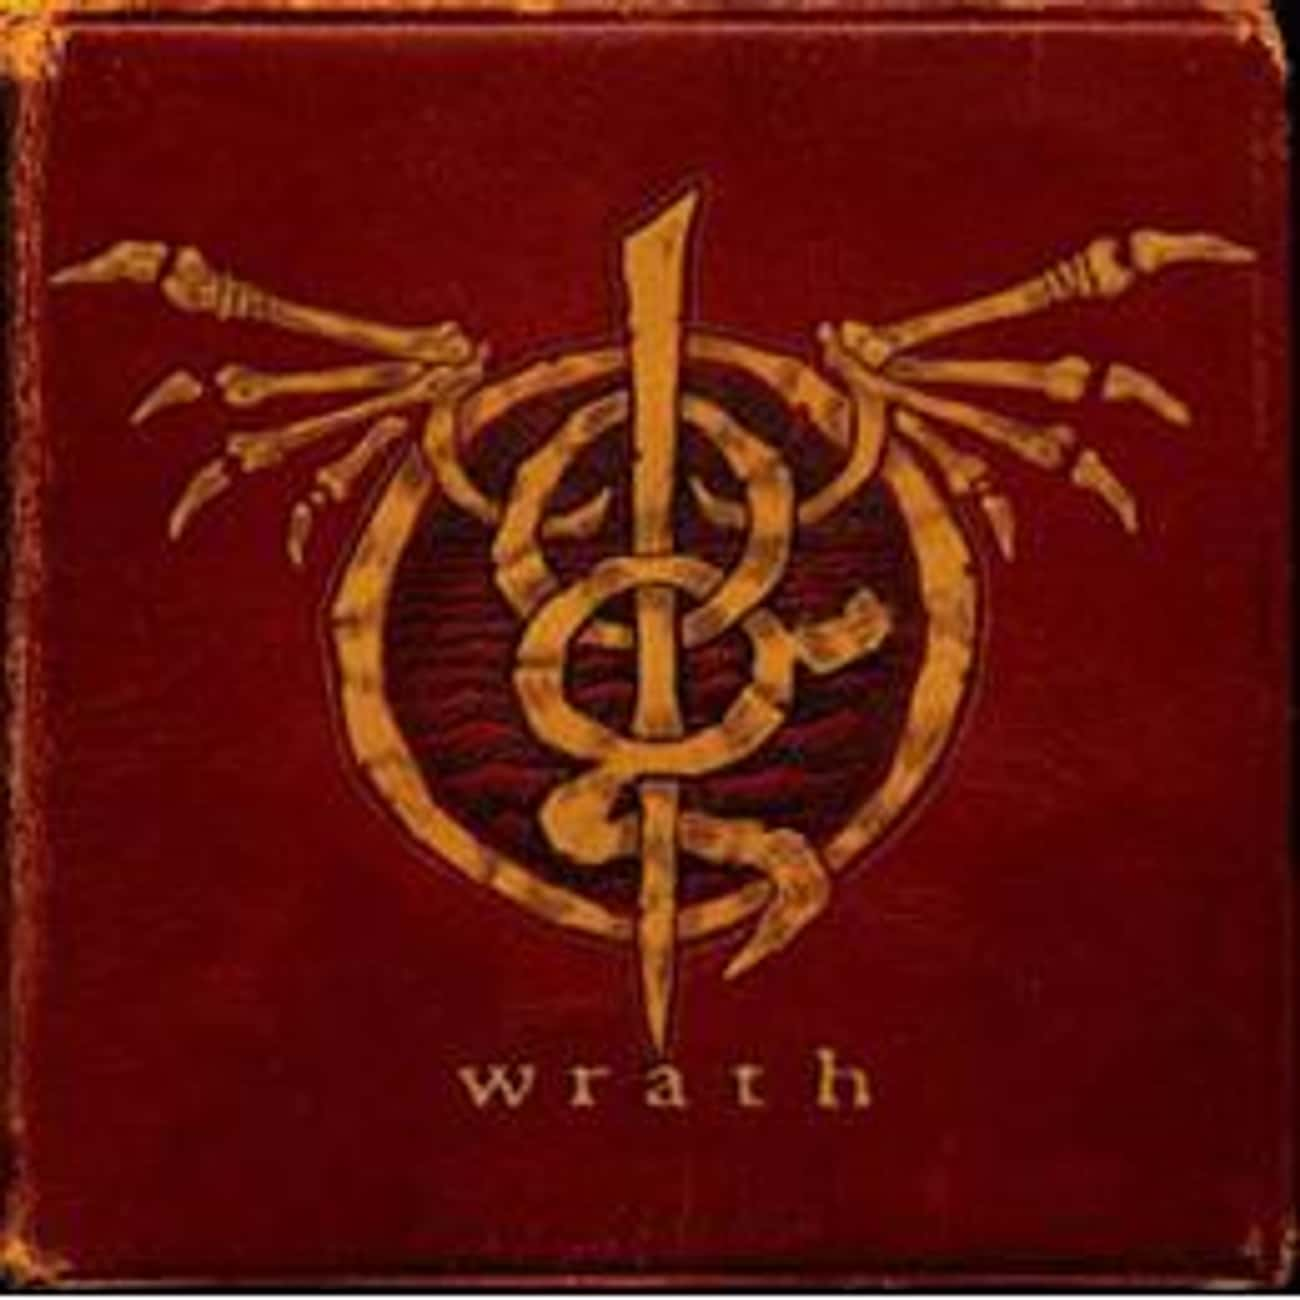 Wrath is listed (or ranked) 4 on the list The Best Lamb Of God Albums of All Time